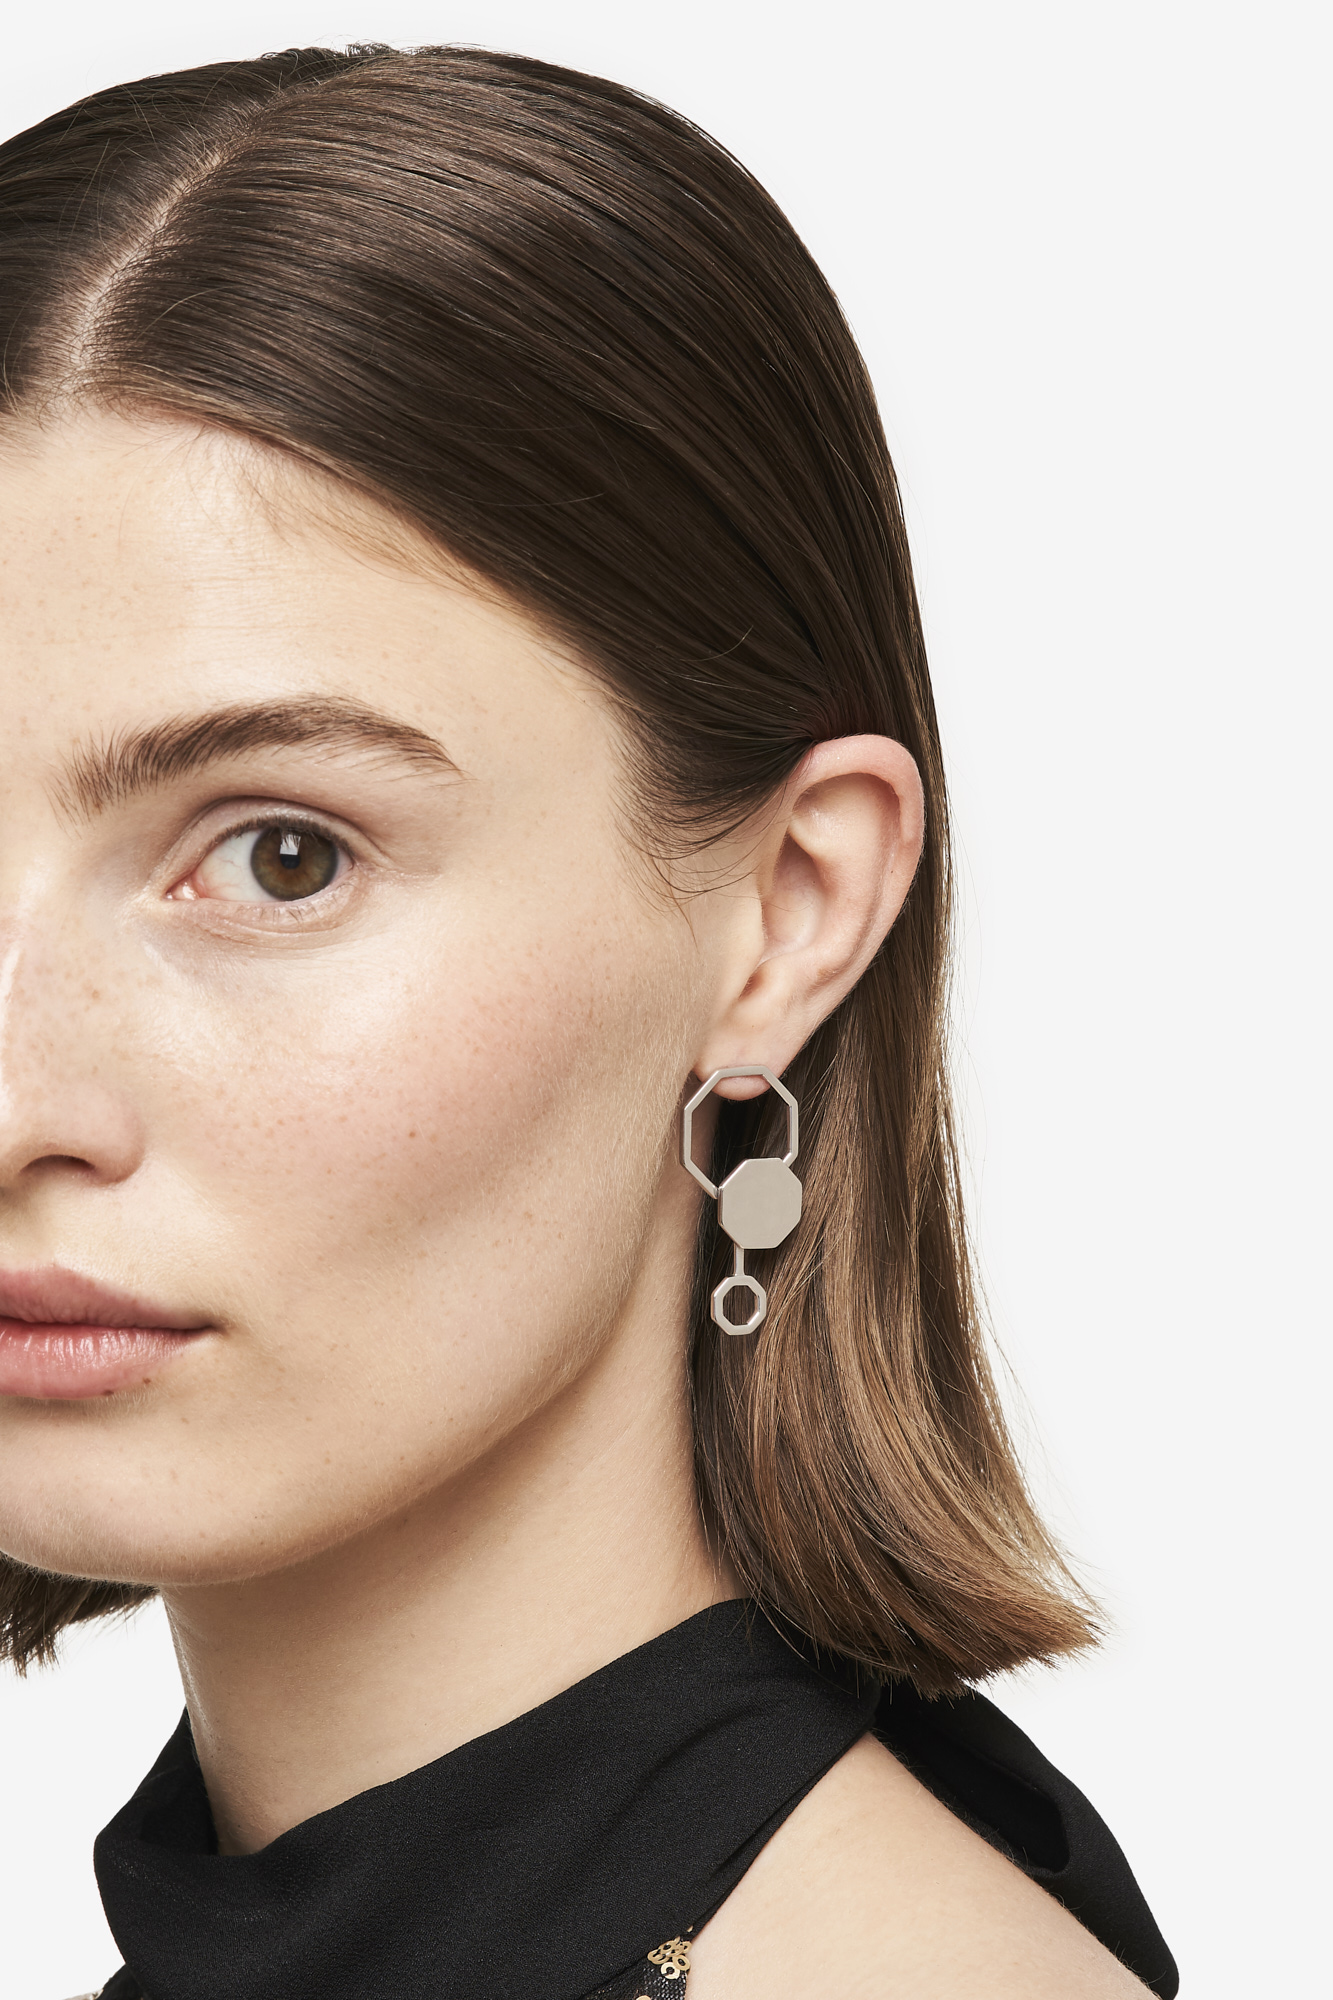 19-03-5-1-006-114-09_Beehaive Earring_Silver_01